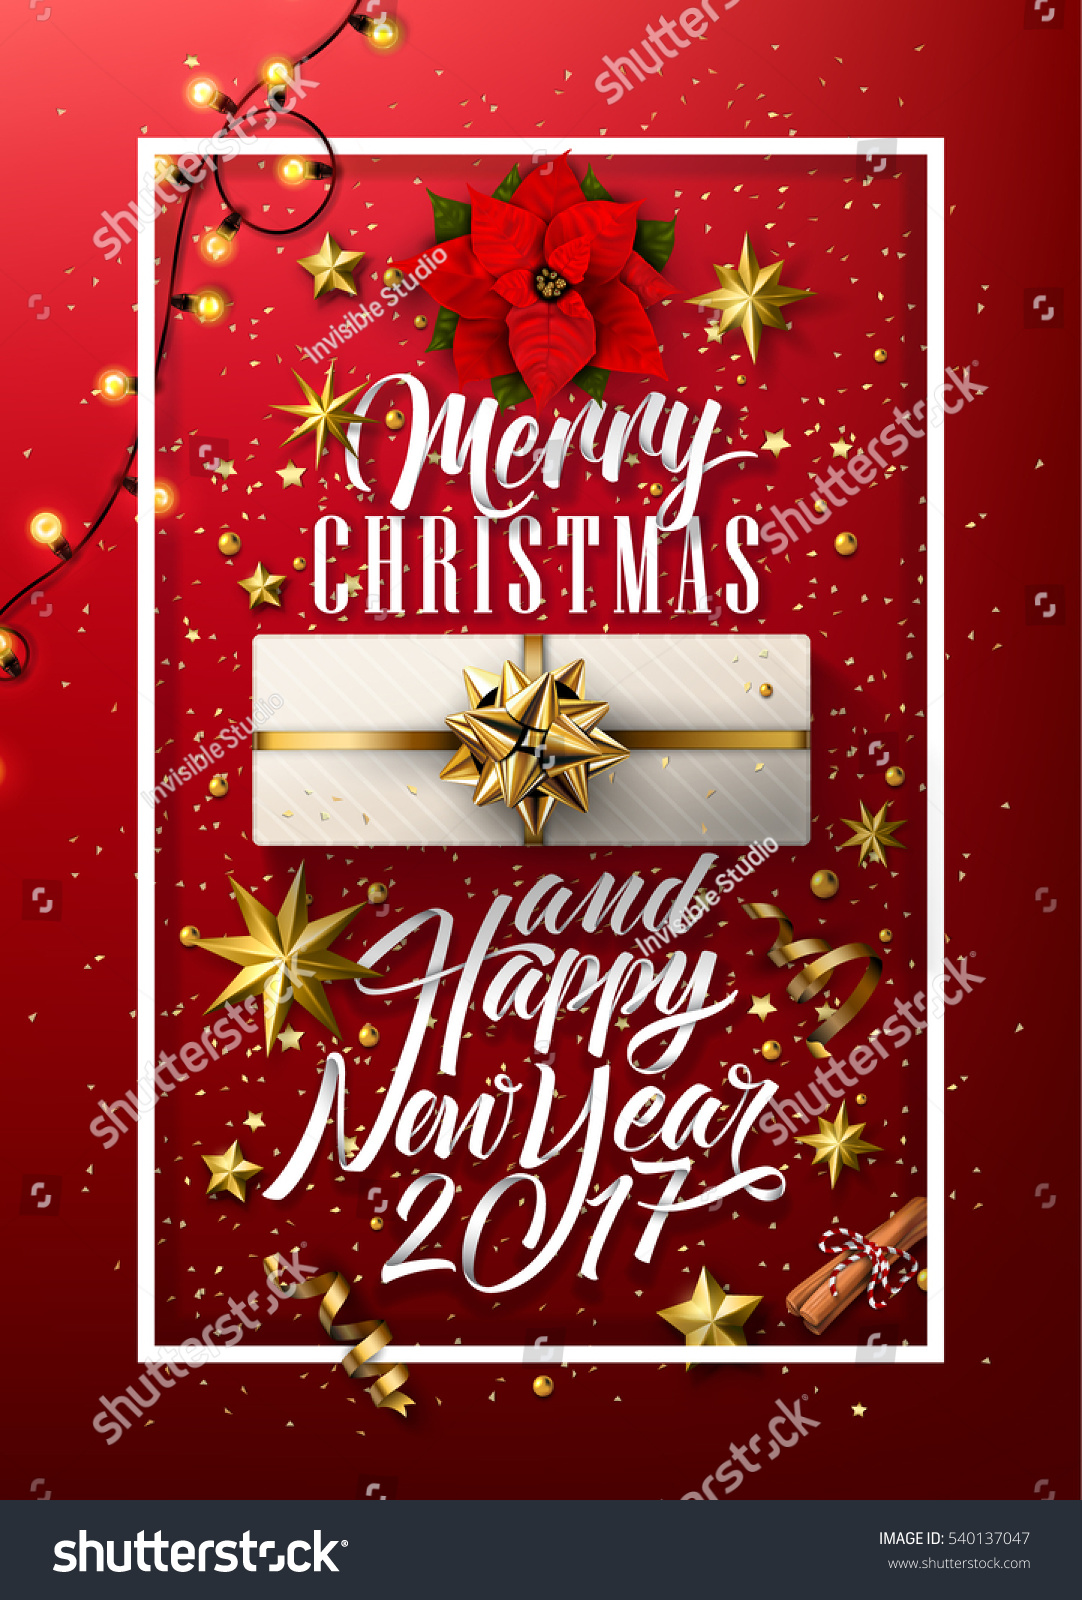 Merry christmas happy new year everyone stock vector 540137047 merry christmas and happy new year everyone vintage background with typography and elements kristyandbryce Gallery